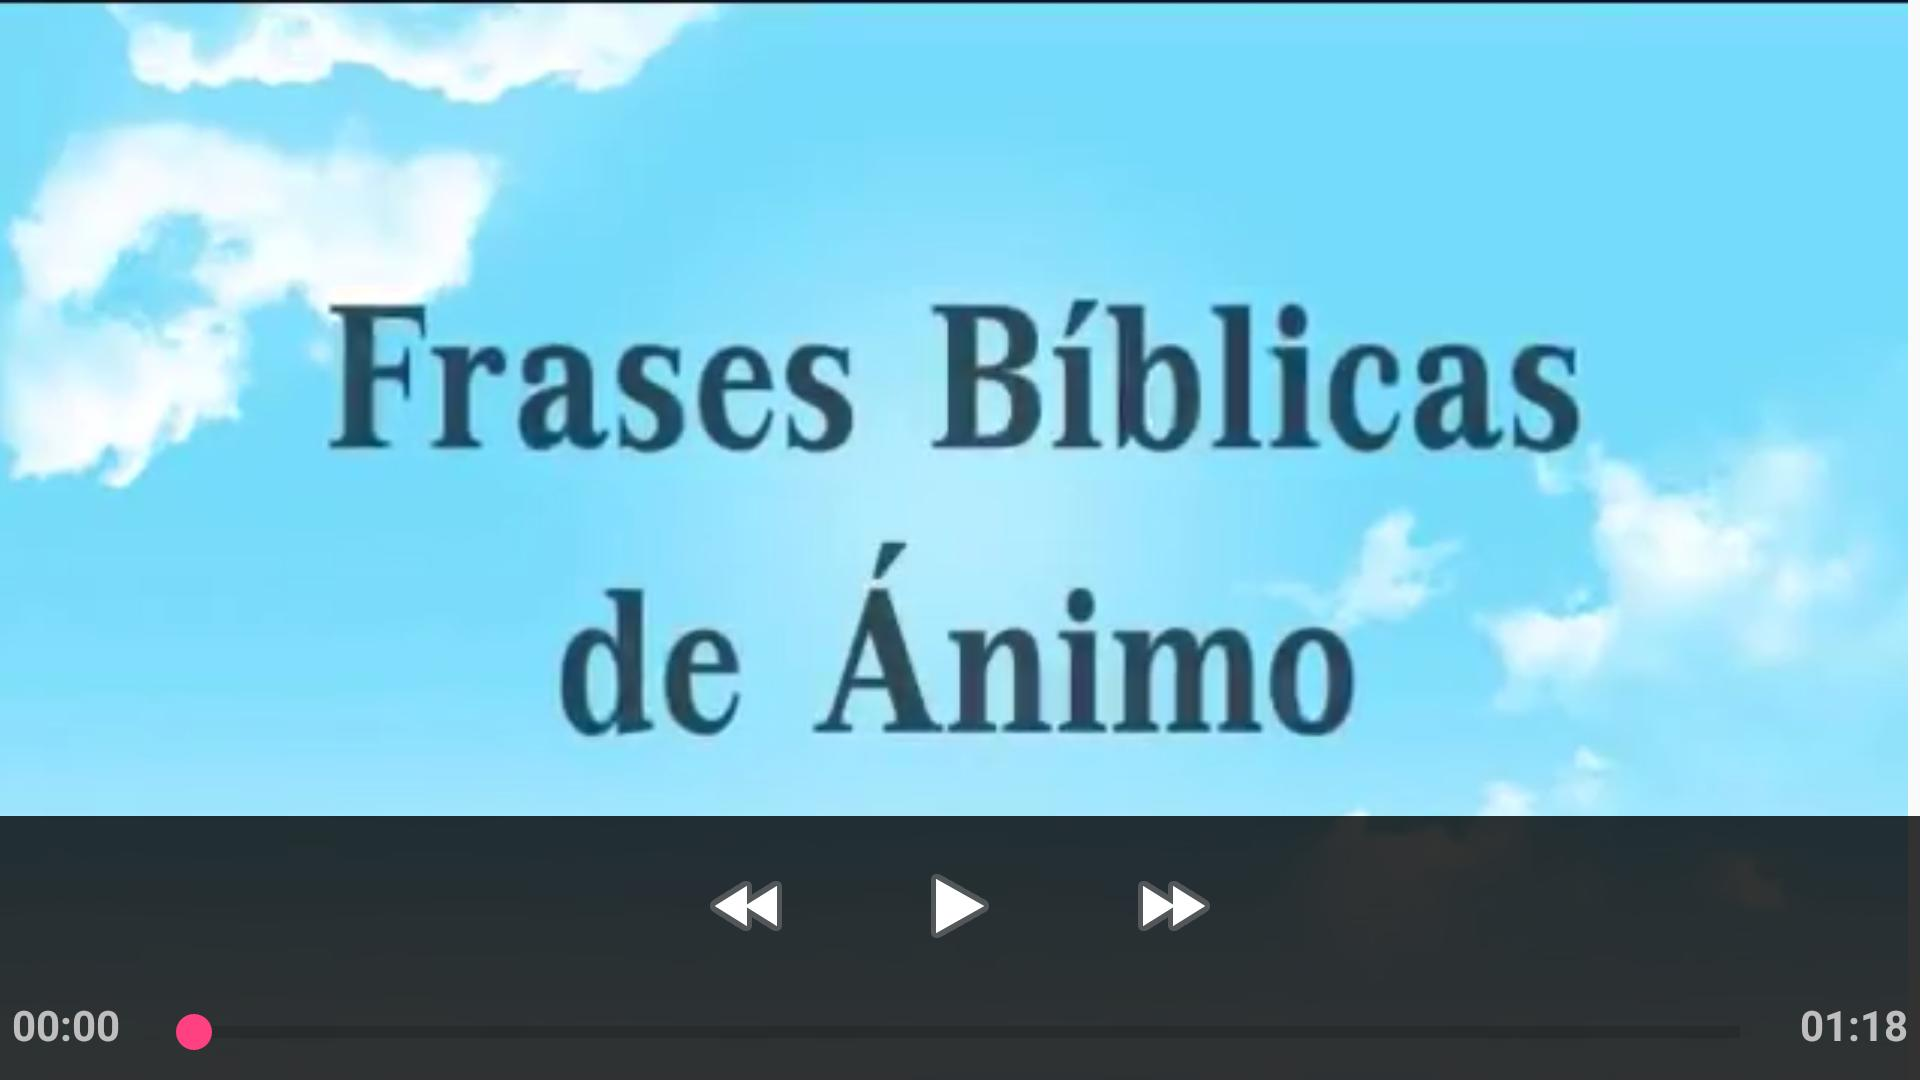 Frases Biblicas De Animo For Android Apk Download